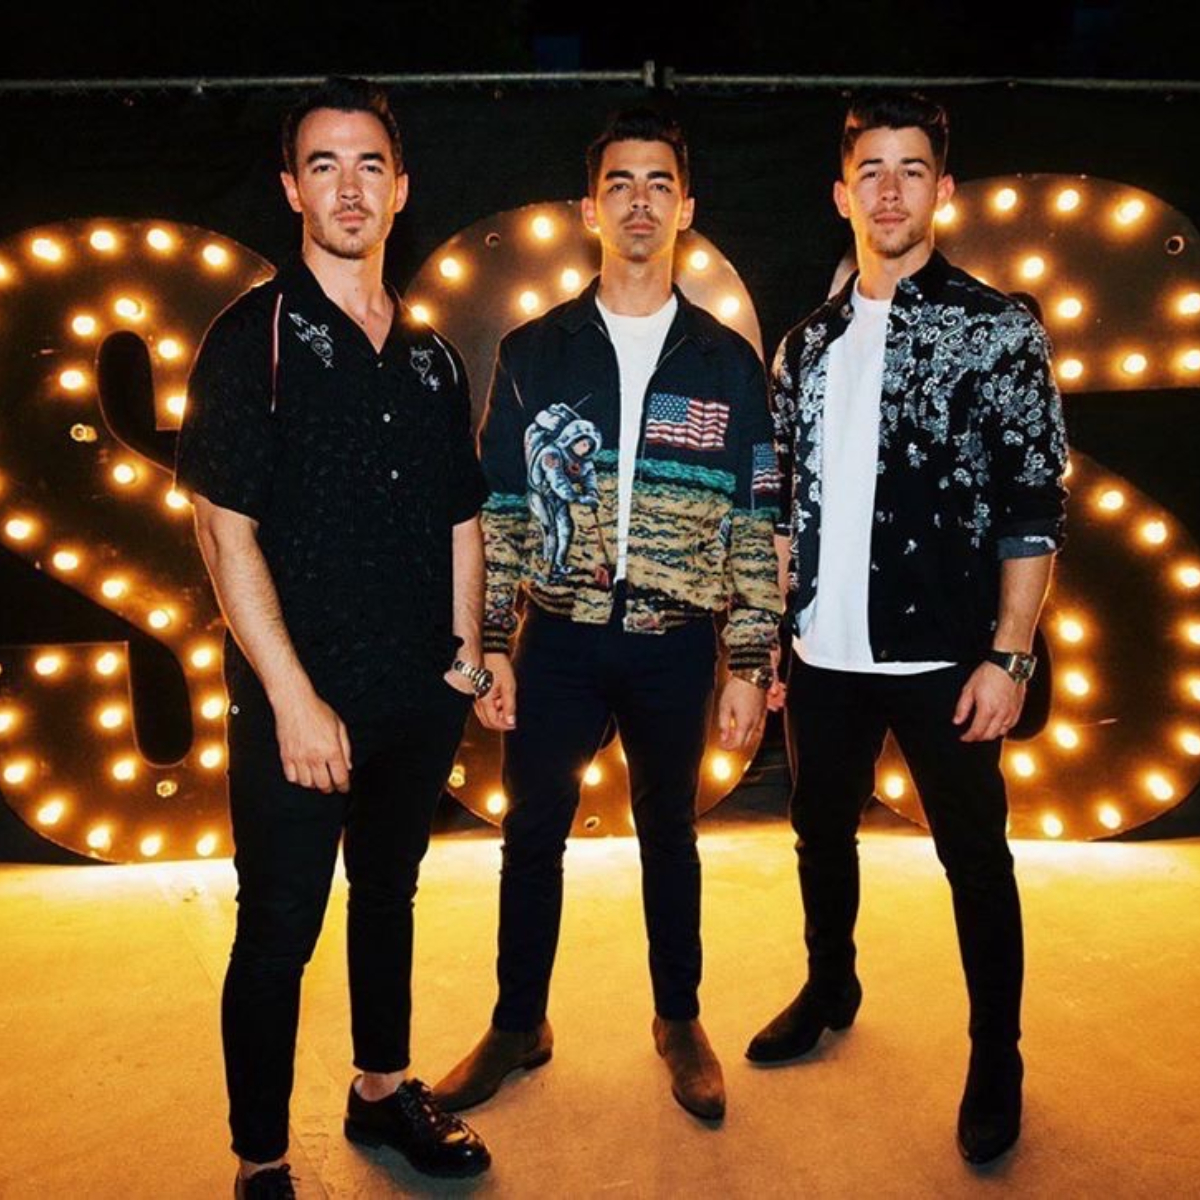 Love Jonas Brothers? Check out the band's top 5 songs